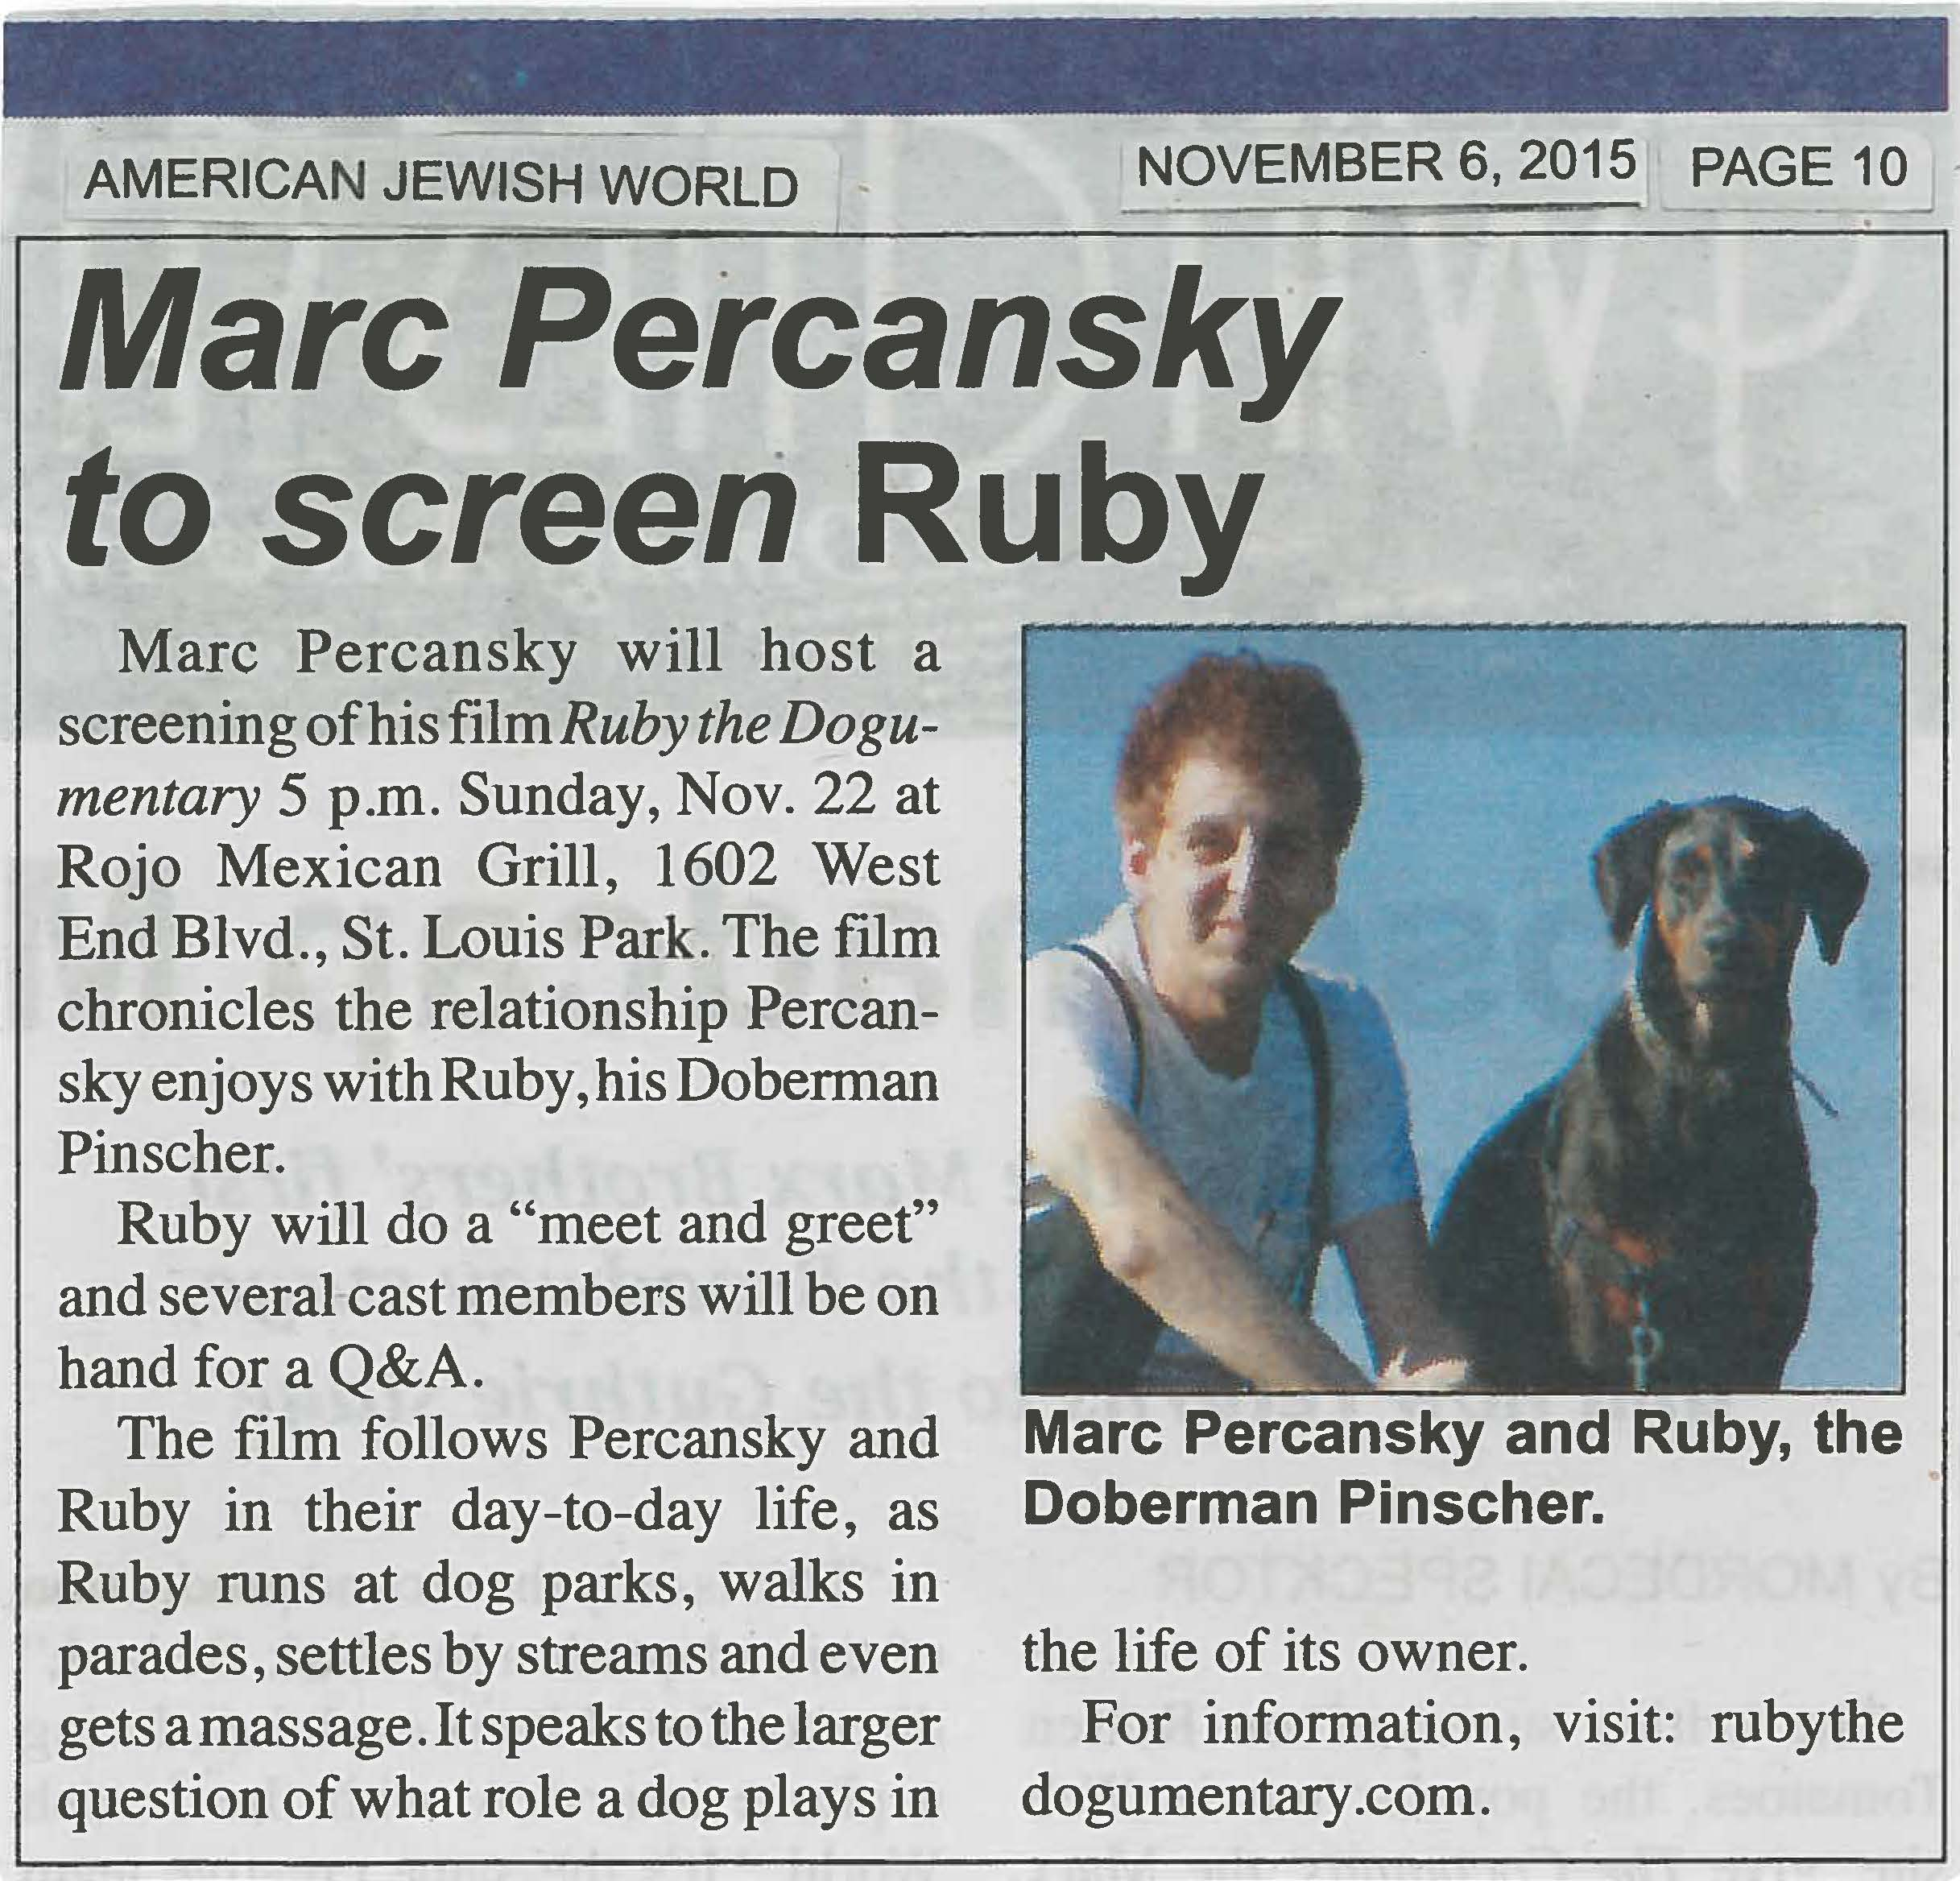 Marc Percansky to screen Ruby /  AMERICAN JEWISH WORLD  / NOVEMBER 6, 2015 / PAGE 10